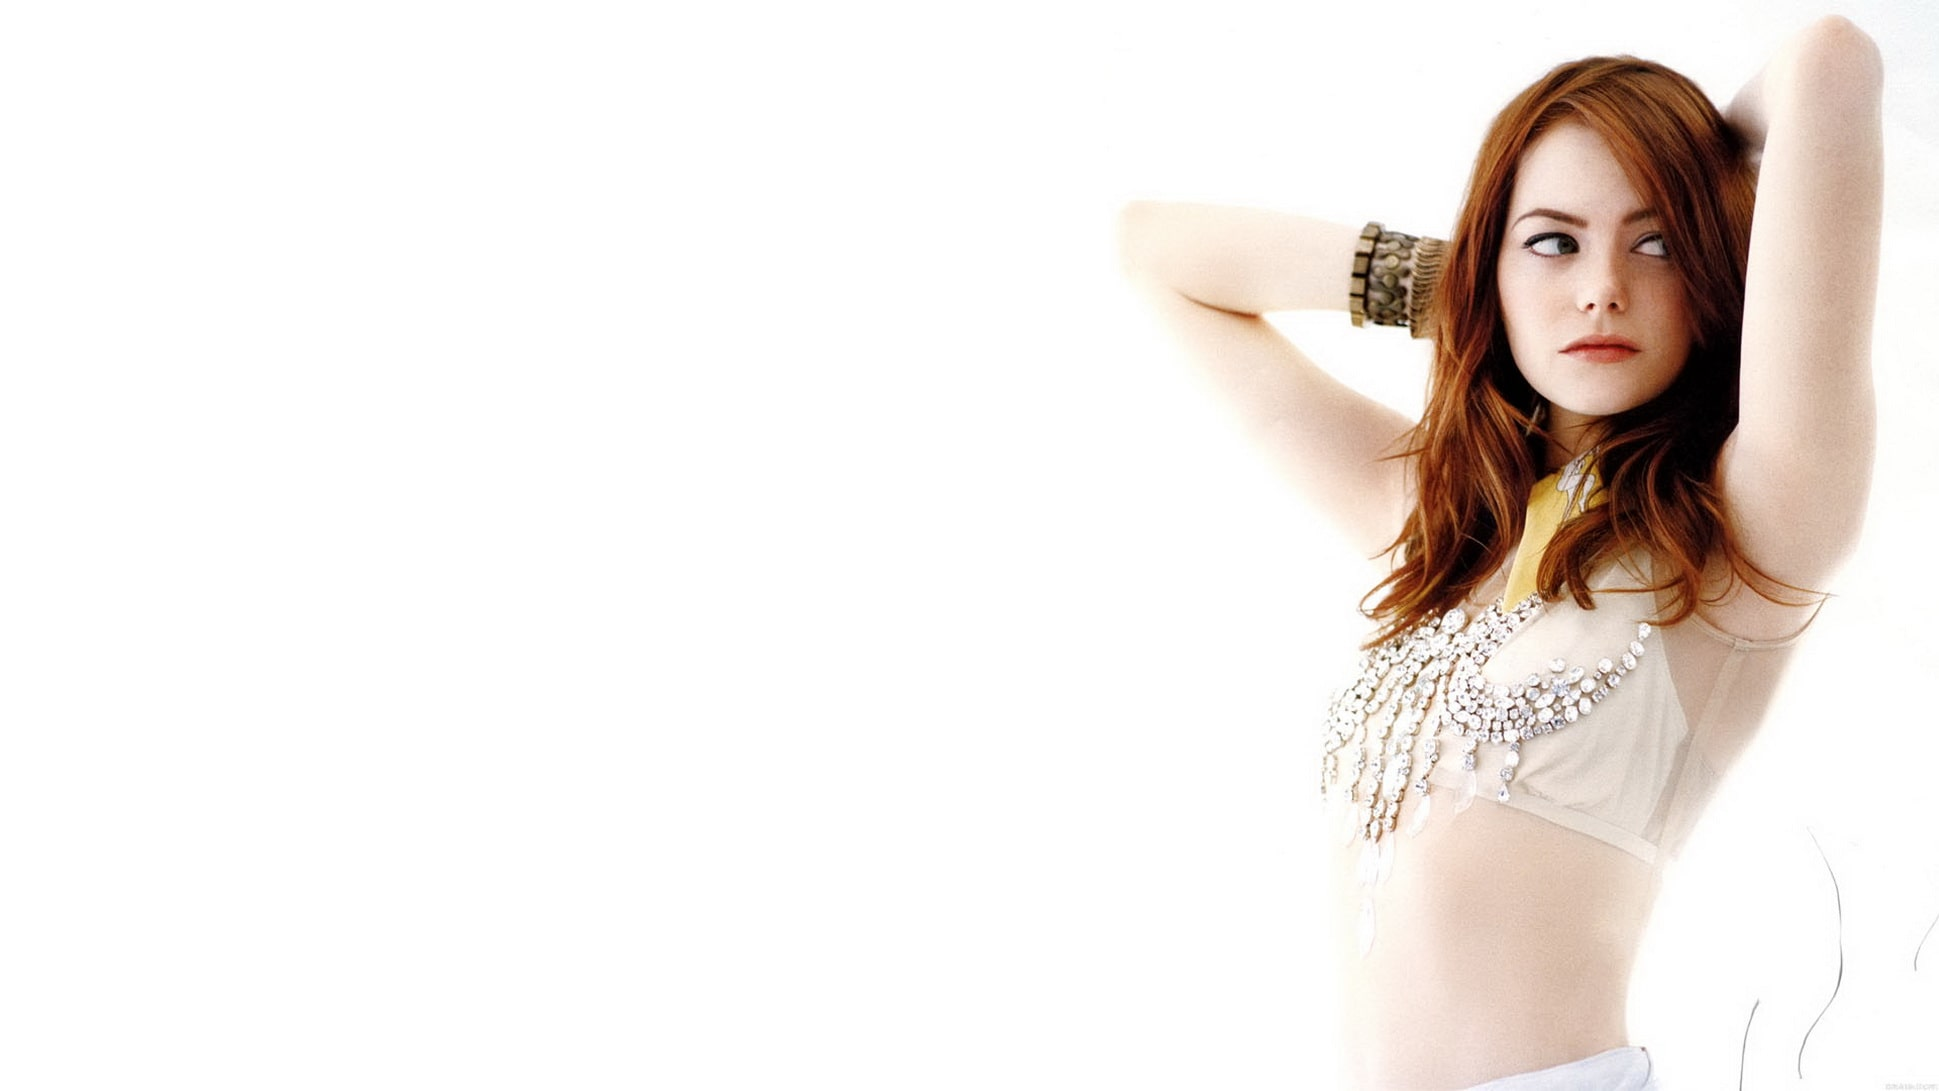 1939x1091 - Emma Stone Wallpapers 29